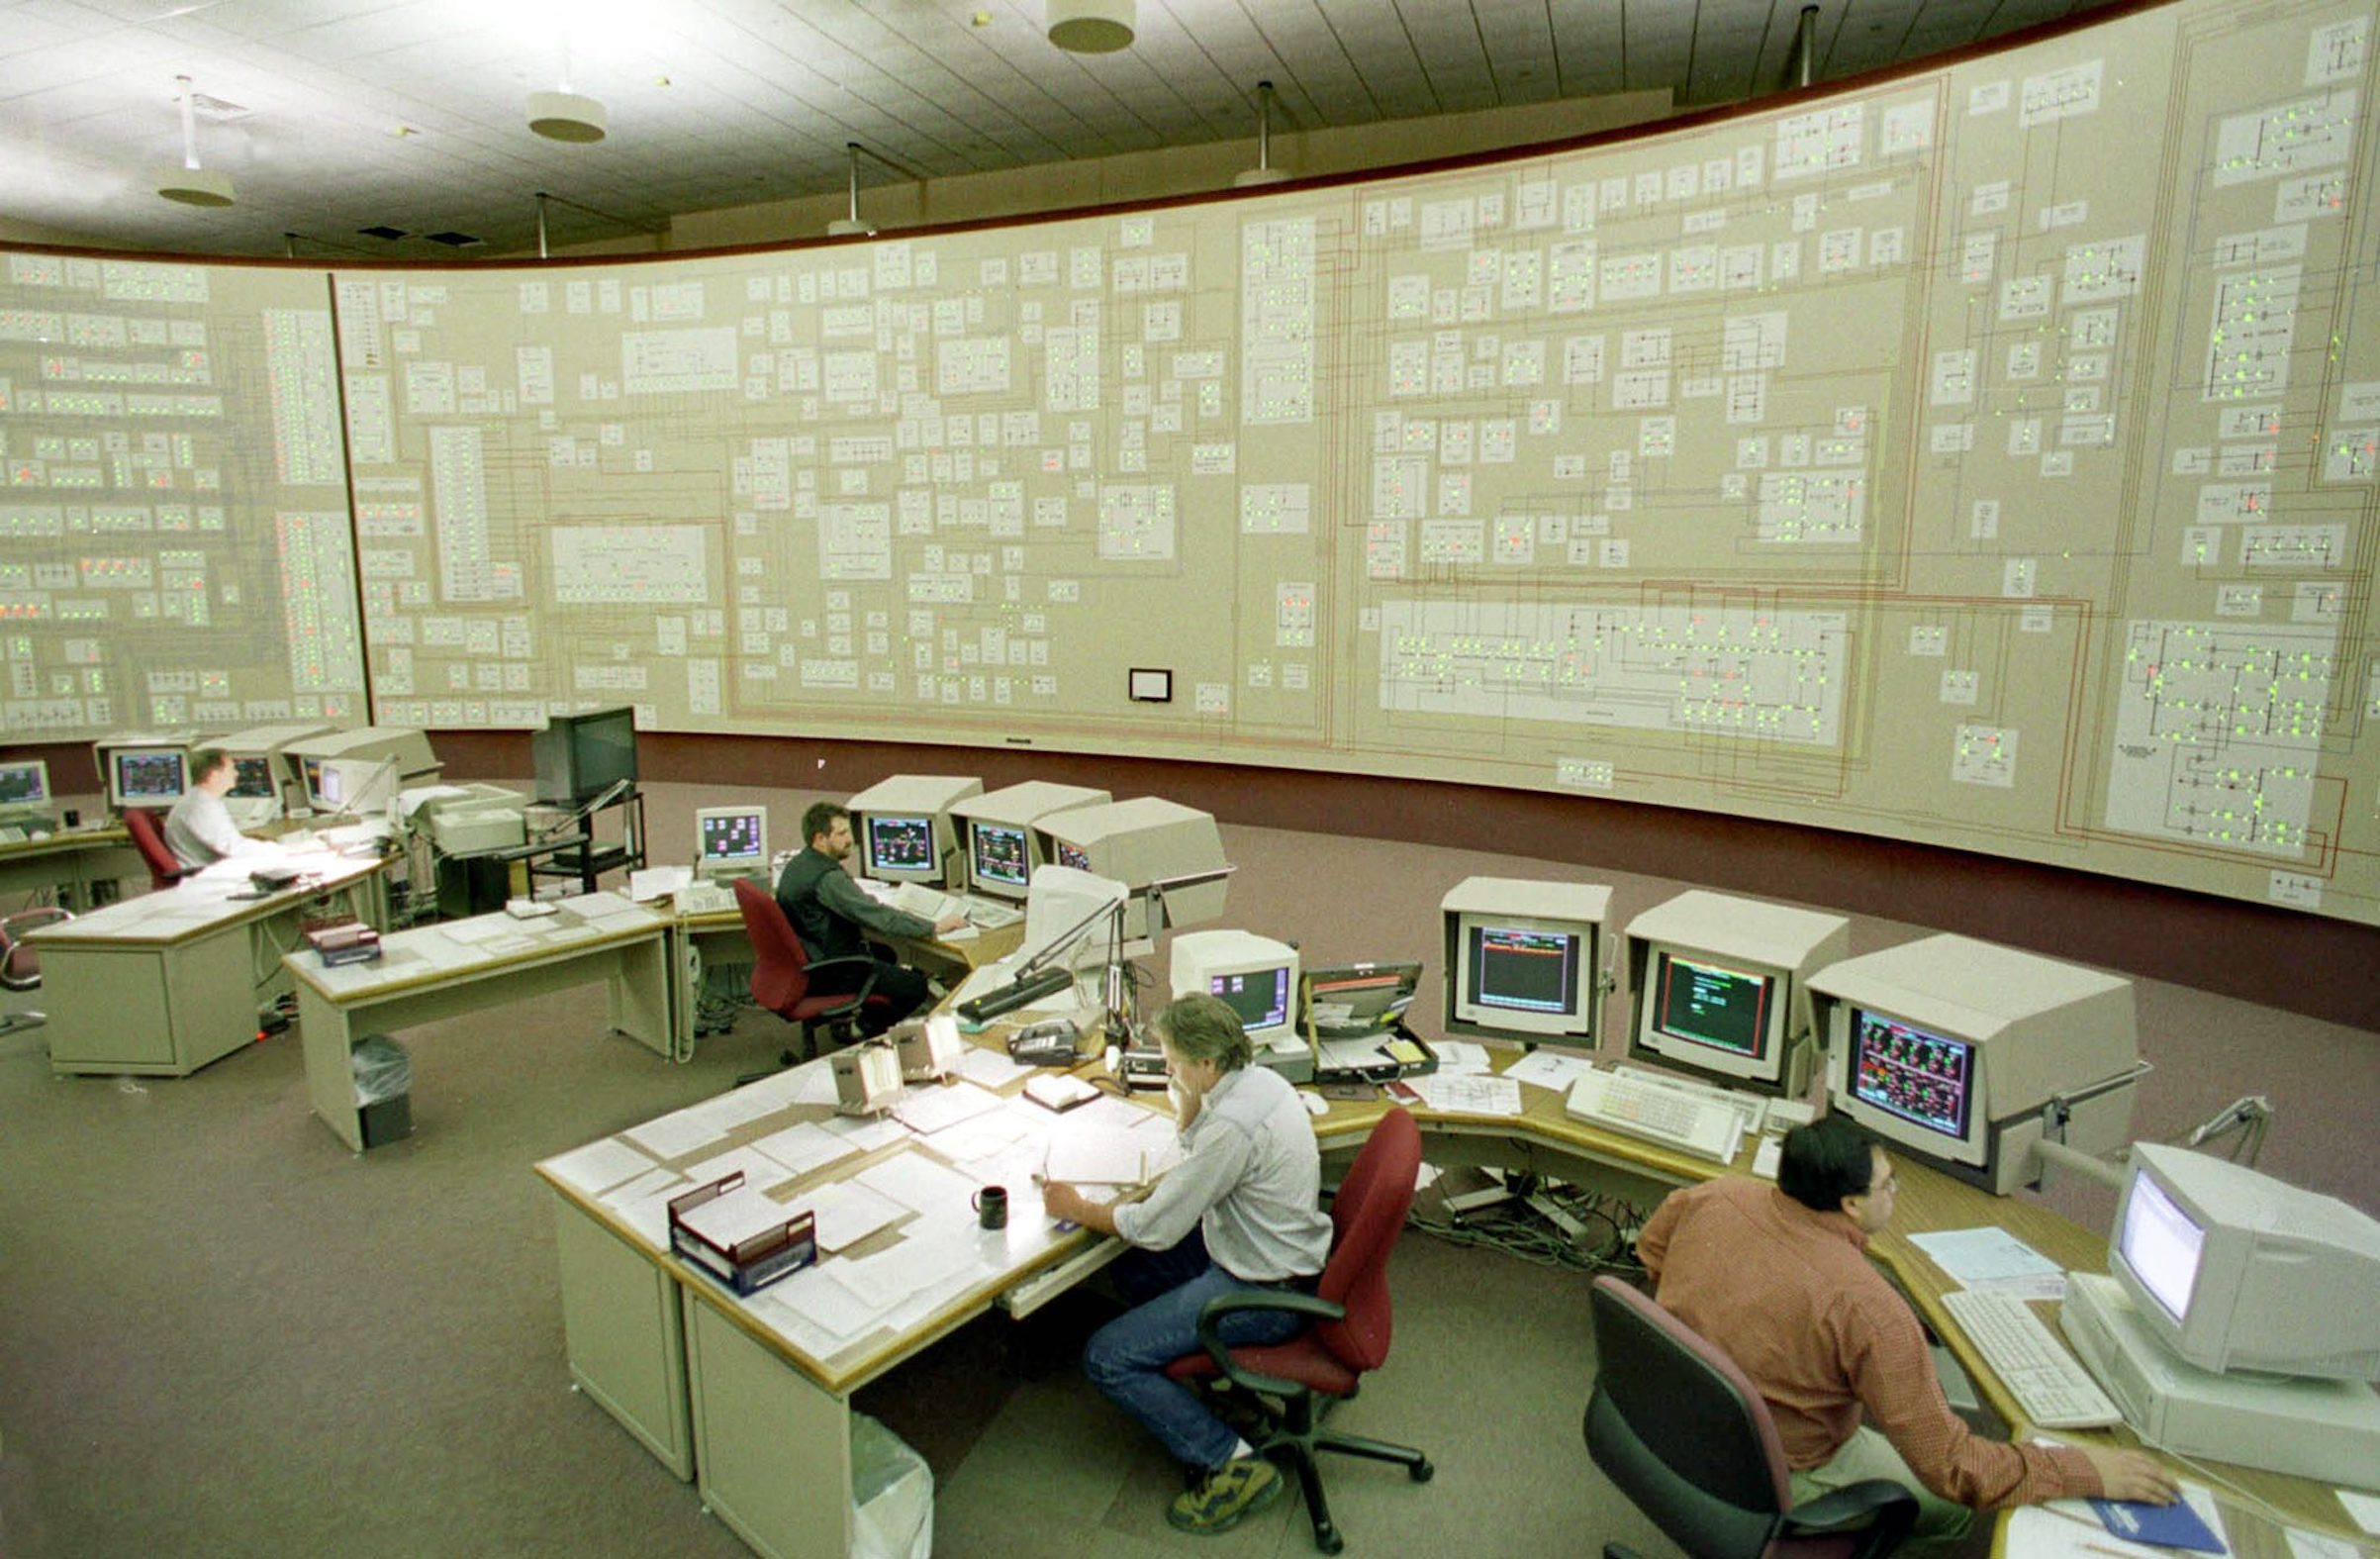 The power grid is lit in the final days of Y2K testing at the Niagara Mohawk Power Company control facility in Buffalo, N.Y., Dec. 28, 1999. The company planned for more than 1000 staff to be on duty system-wide on New Year's Eve to be ready for any problems.